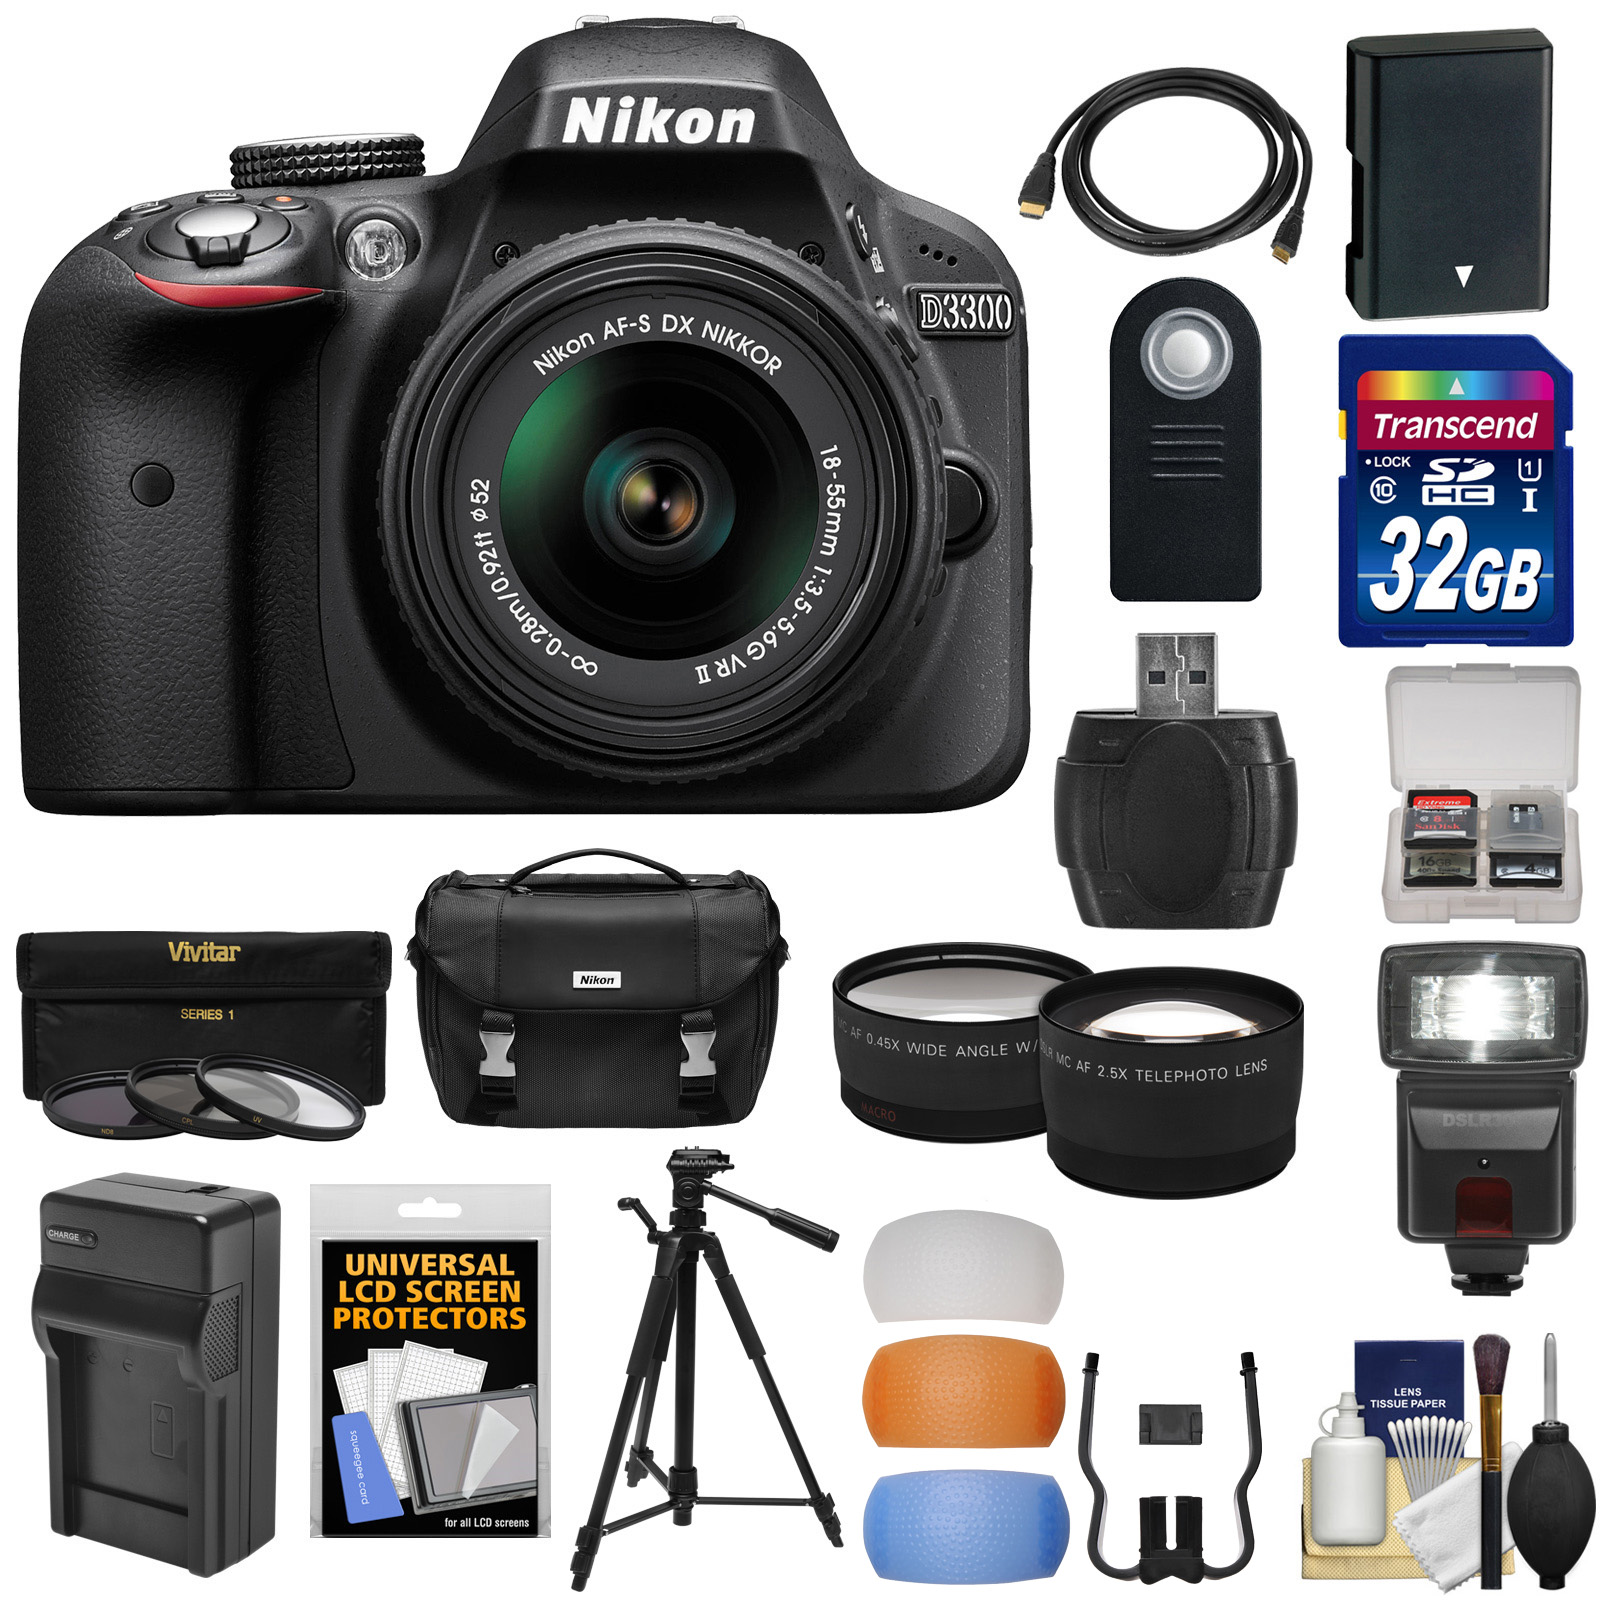 Nikon D3300 Digital SLR Camera & 18-55mm G VR DX II AF-S Zoom Lens (Black) with 32GB Card + Battery & Charger + Case + Tripod + Flash + Tele/Wide Lens Kit